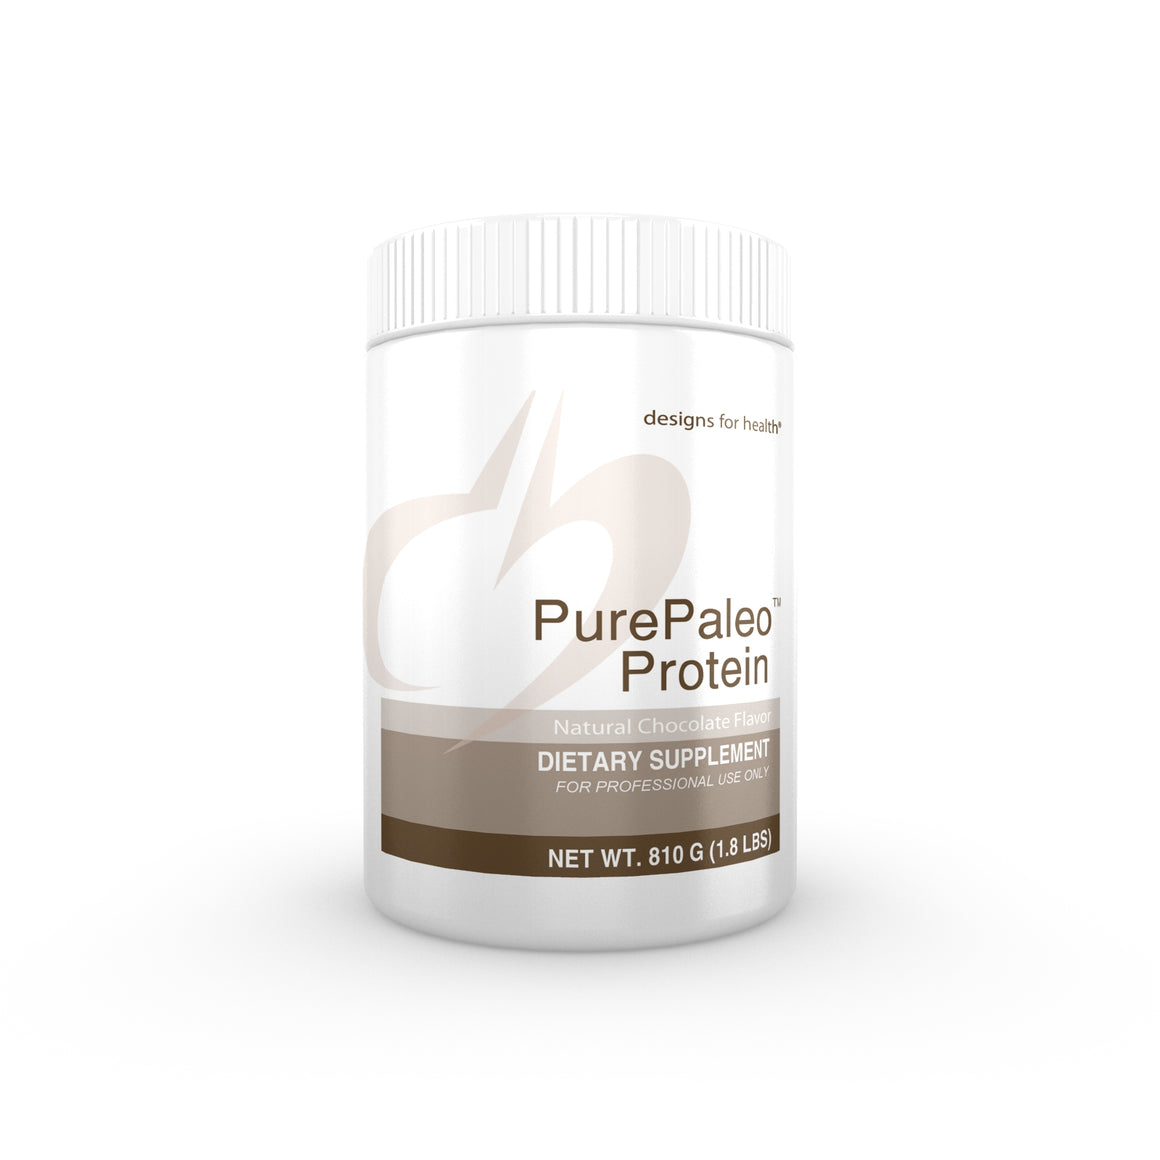 PurePaleo Protein Shake Mix by Designs for Health